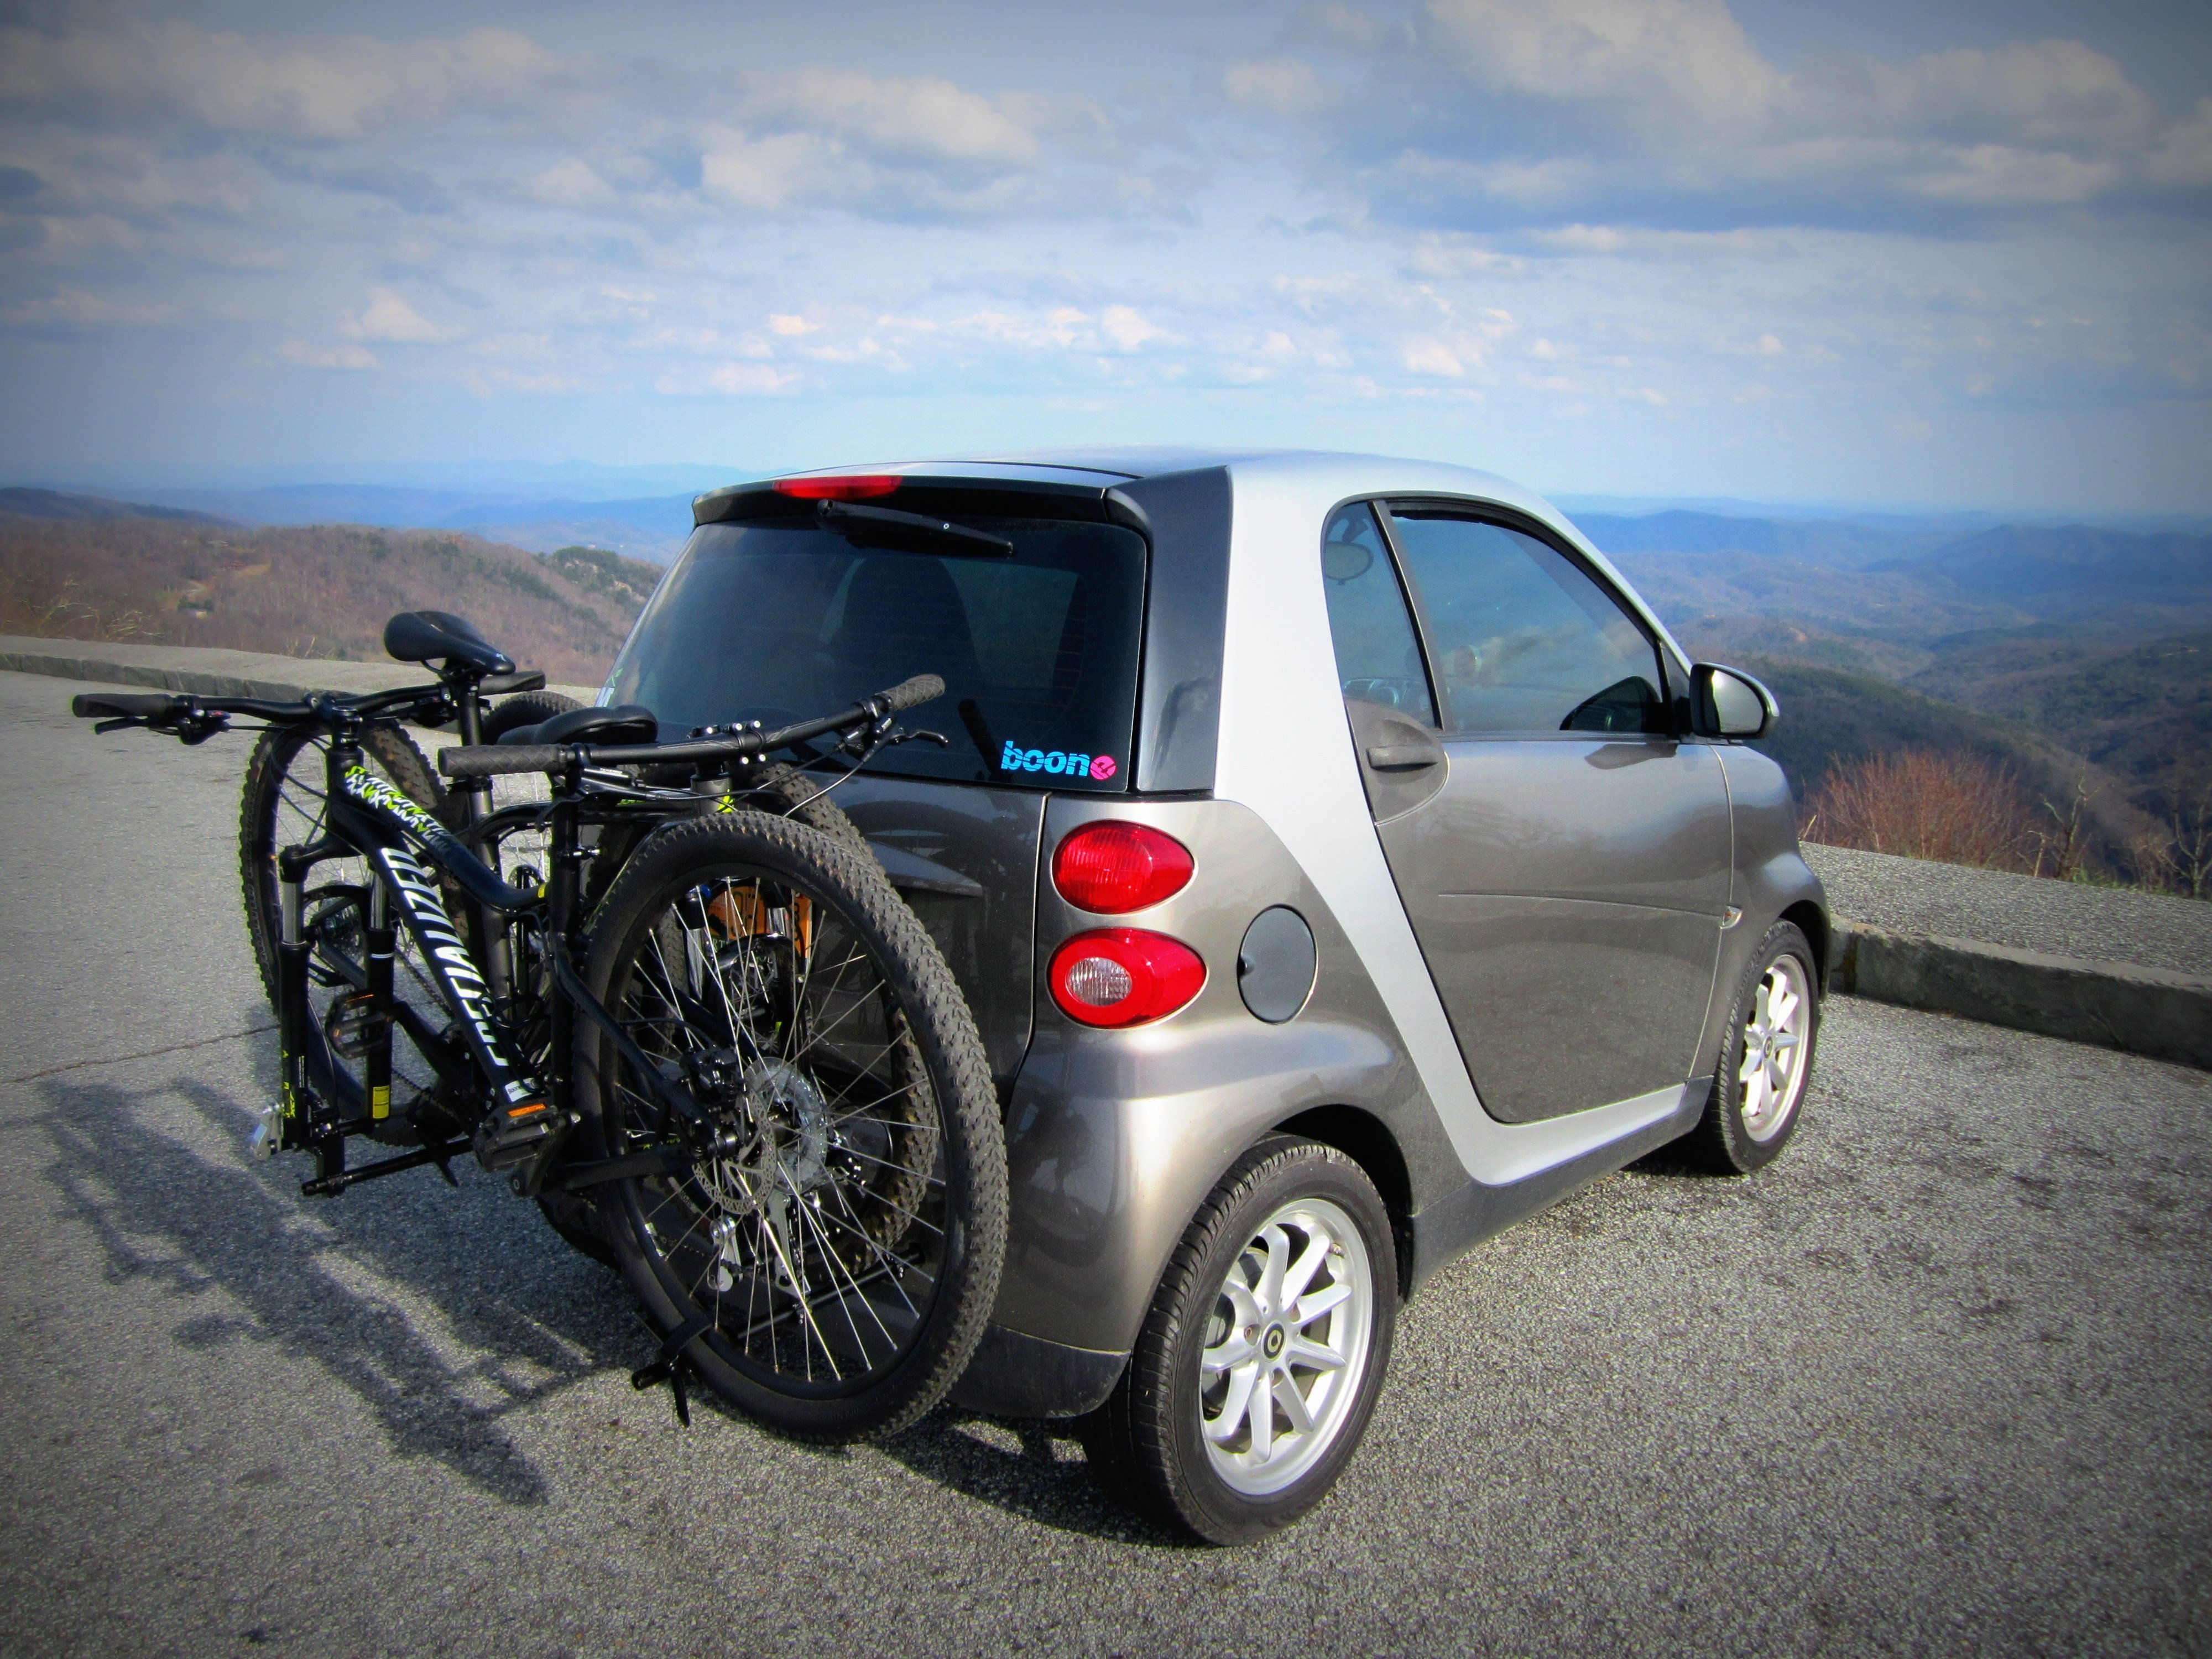 The Smart Car Bicycle Rack 2x2 Cycles